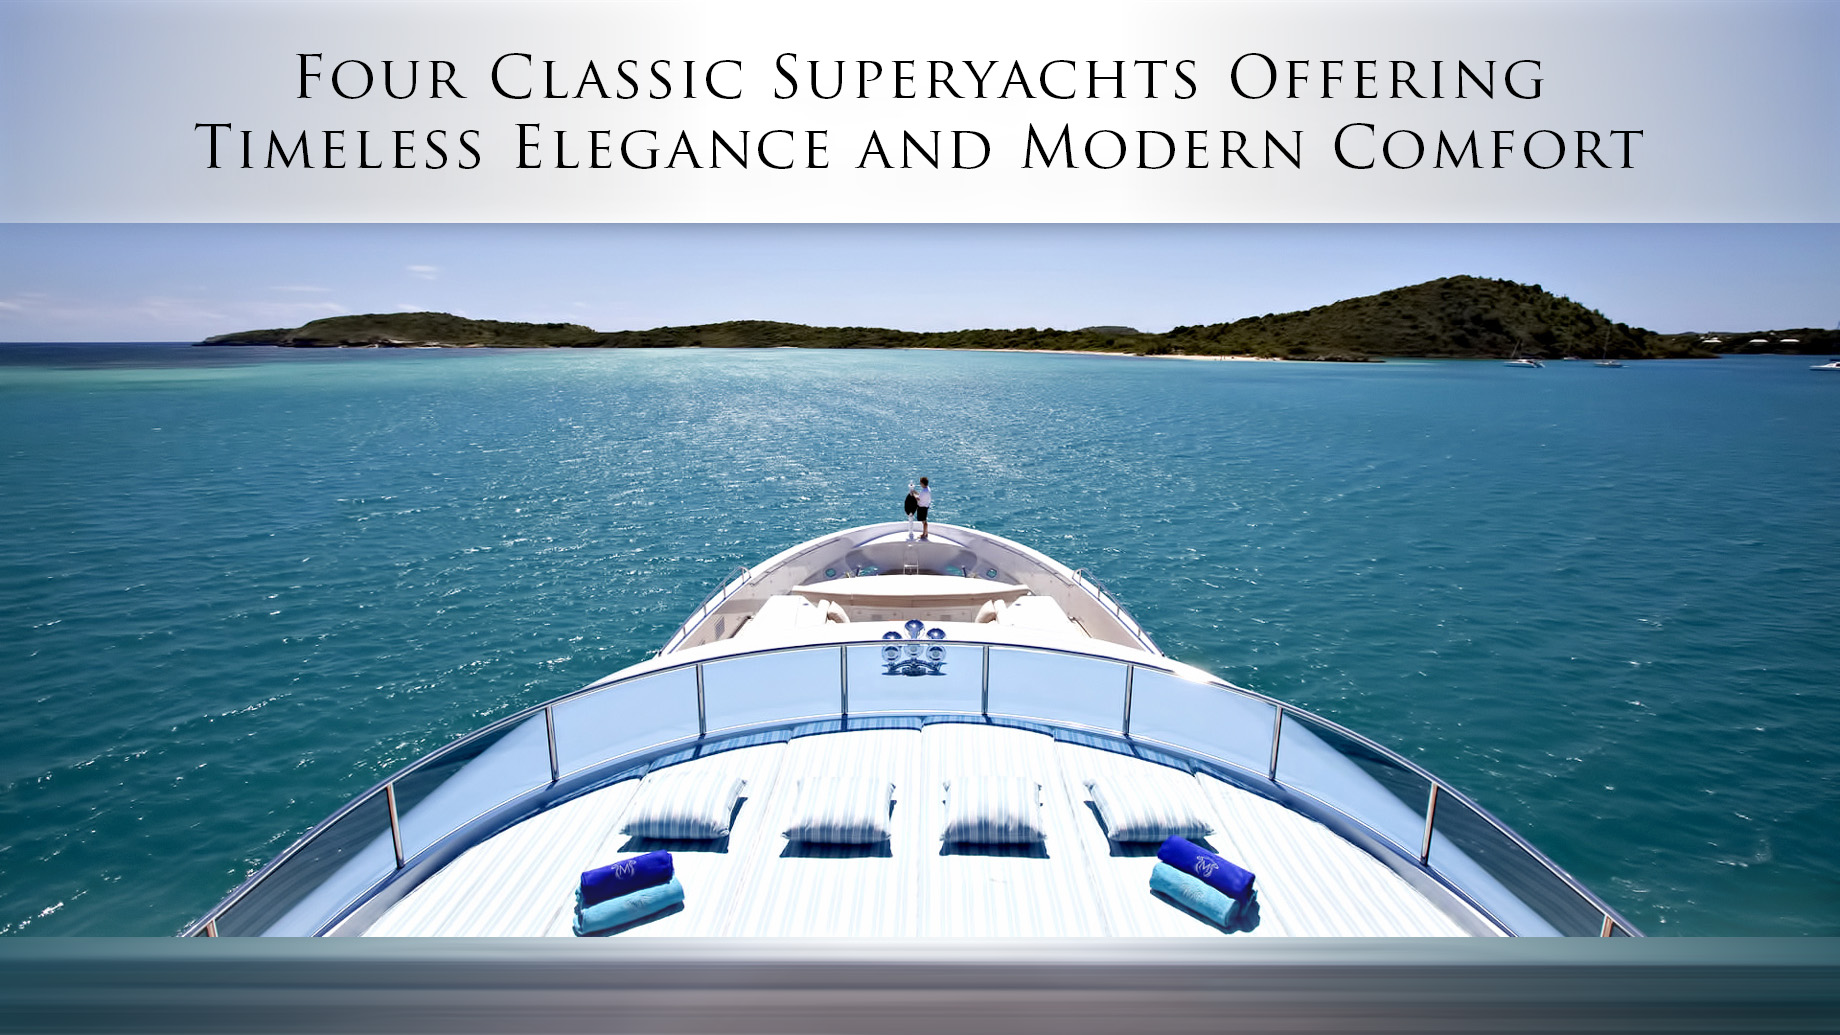 Four Classic Superyachts Offering Timeless Elegance and Modern Comfort